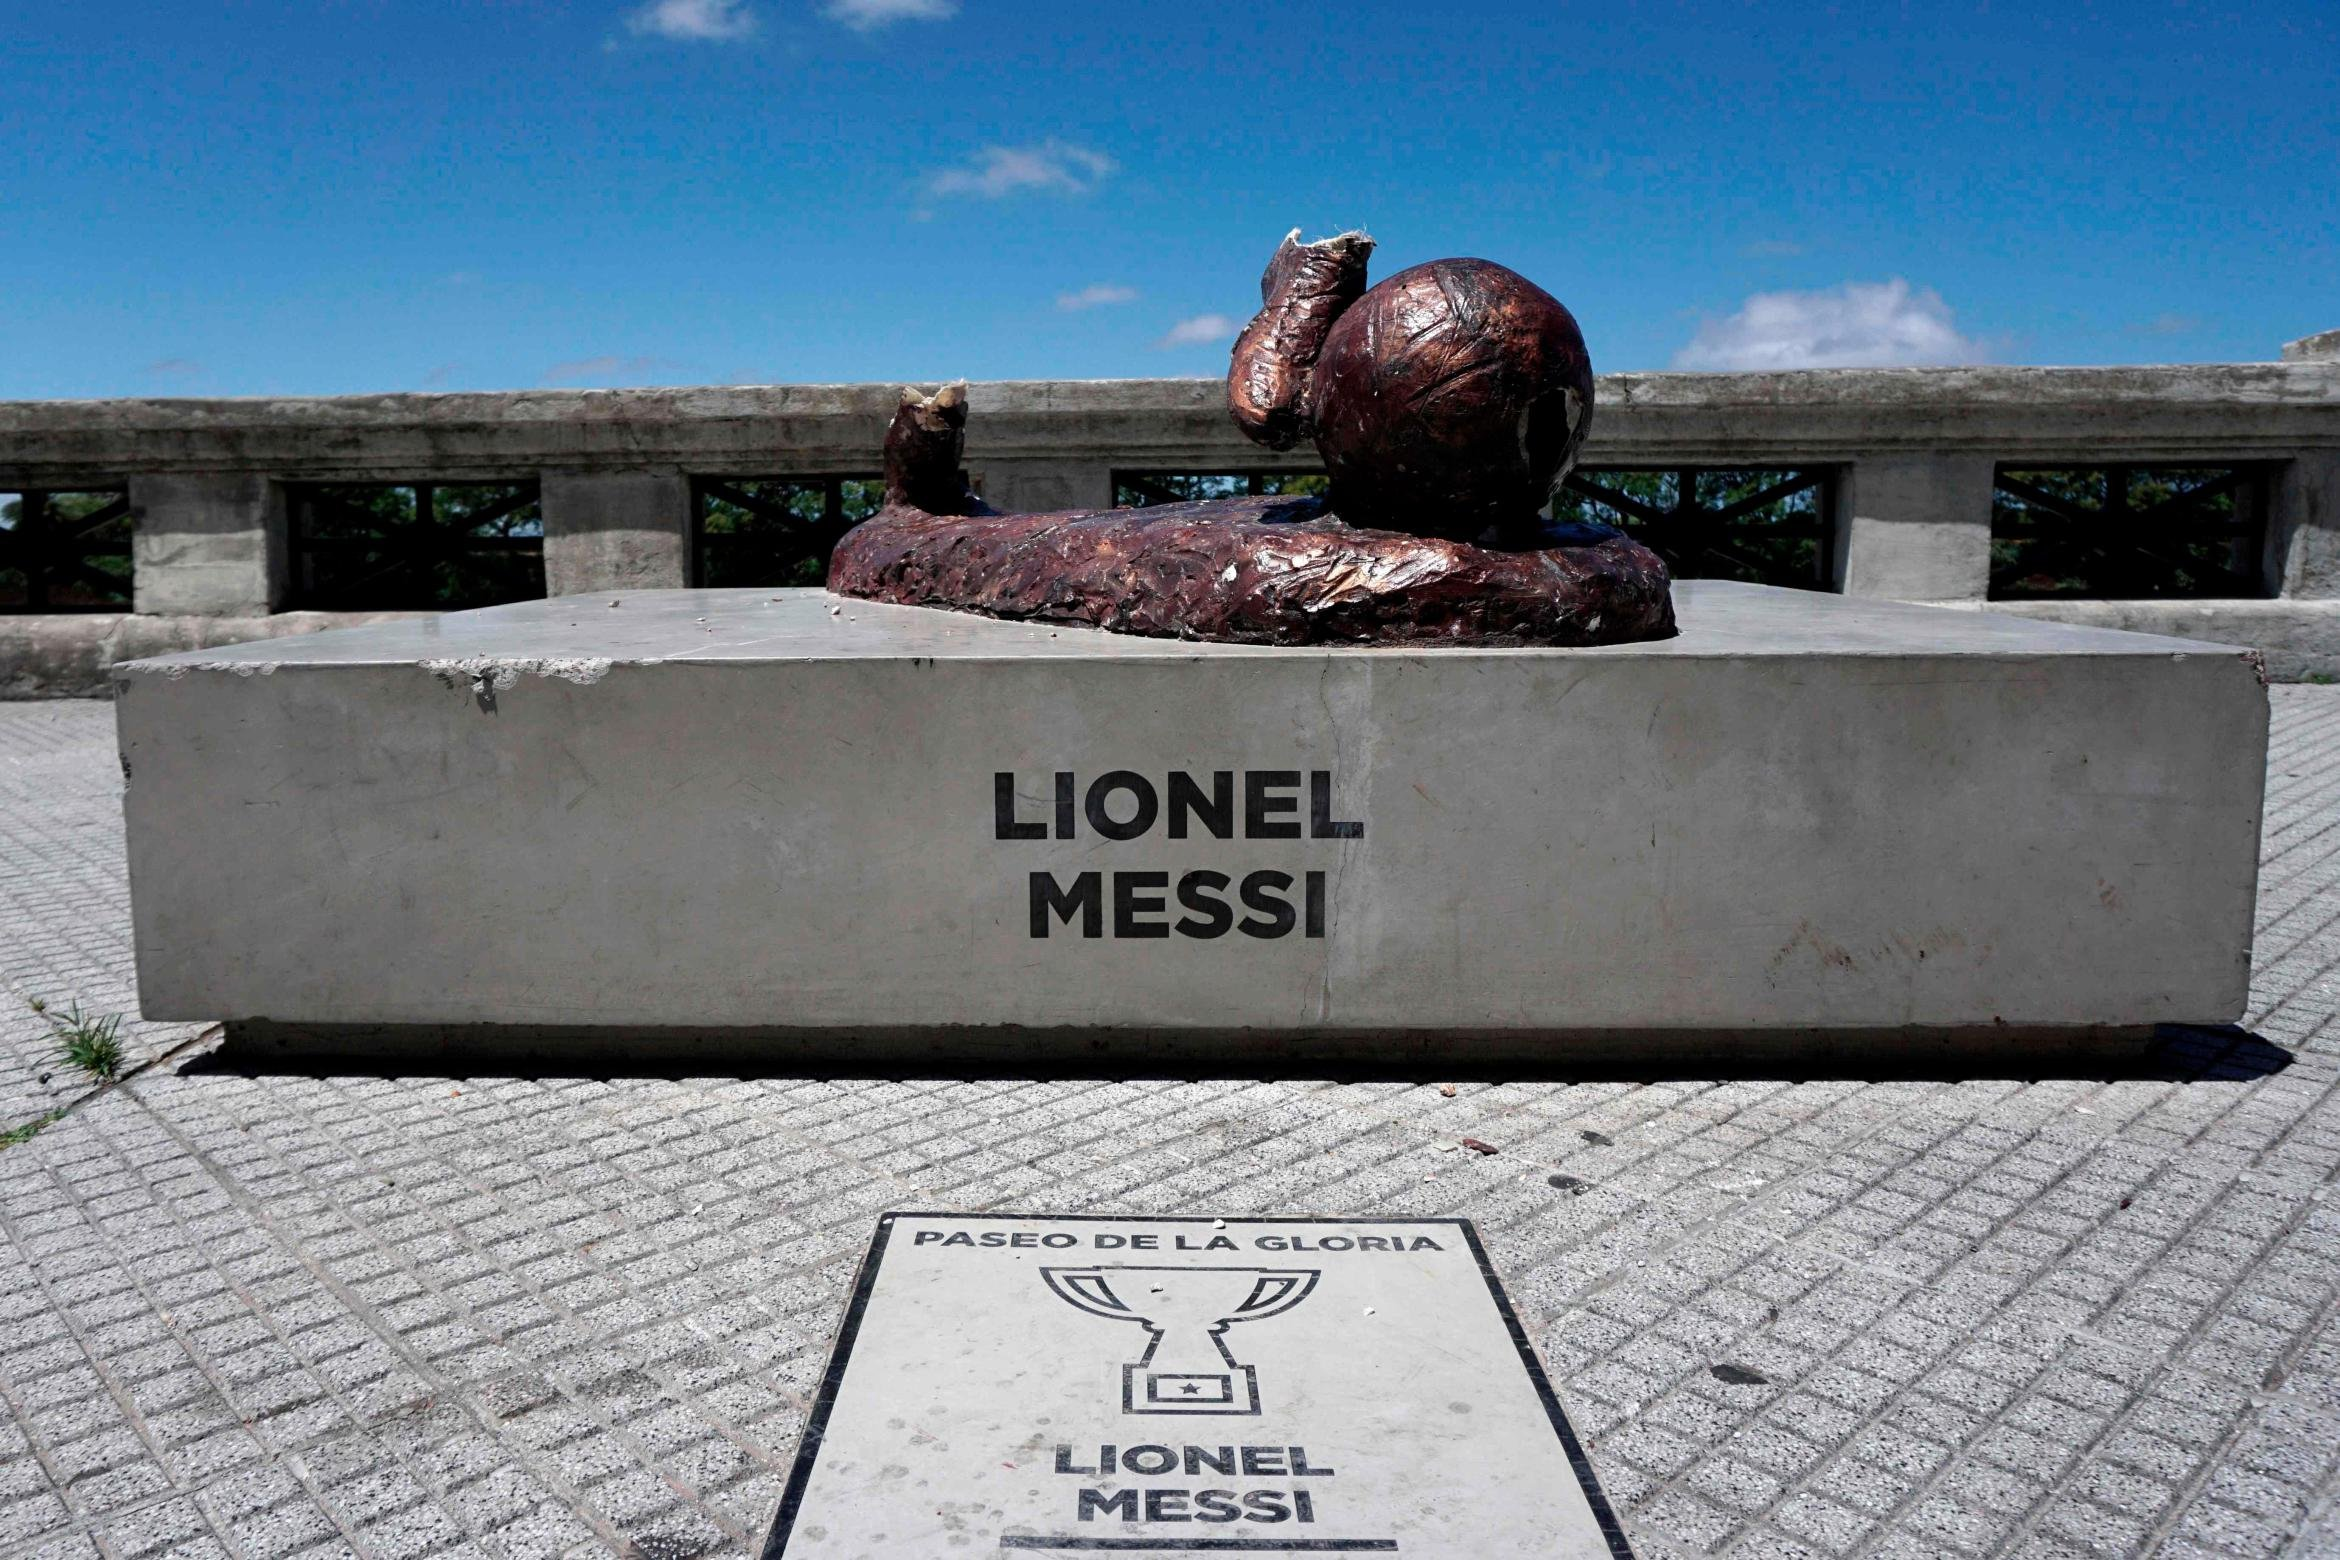 wp-image-1252697874 Vandals destroy Lionel Messi's Statue for the Second time in one year